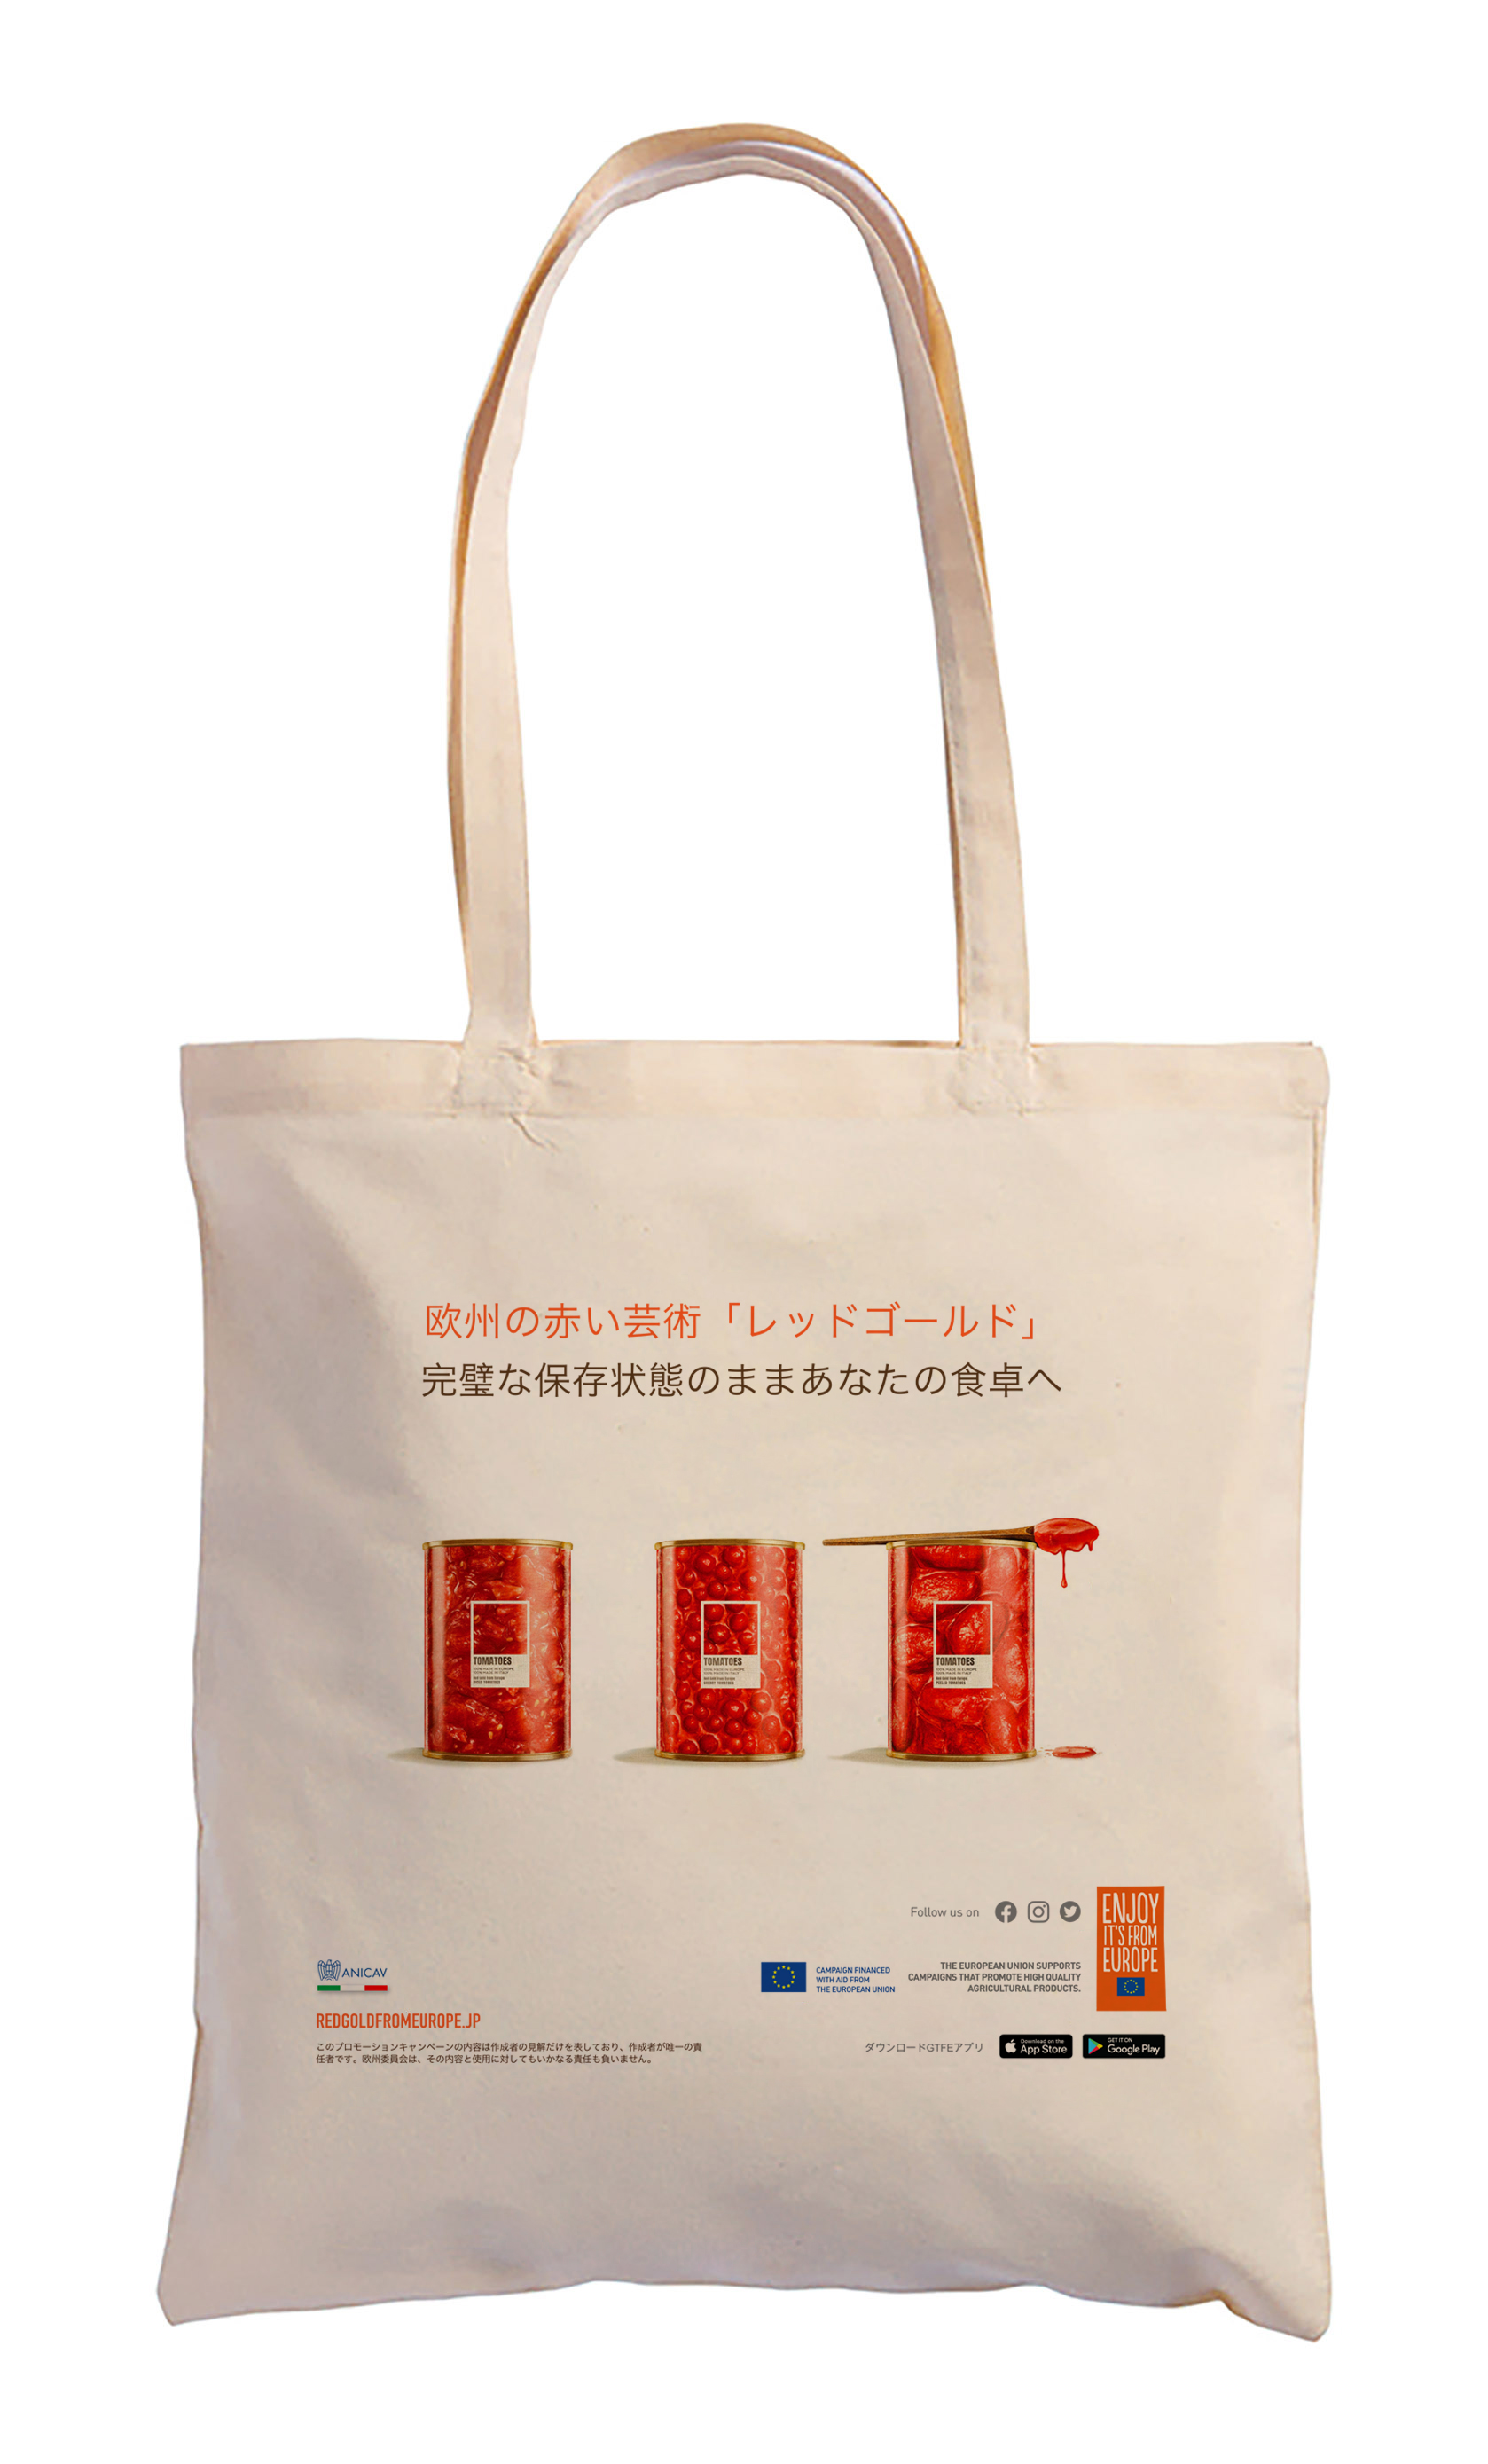 It's time for a Shopping bag present!